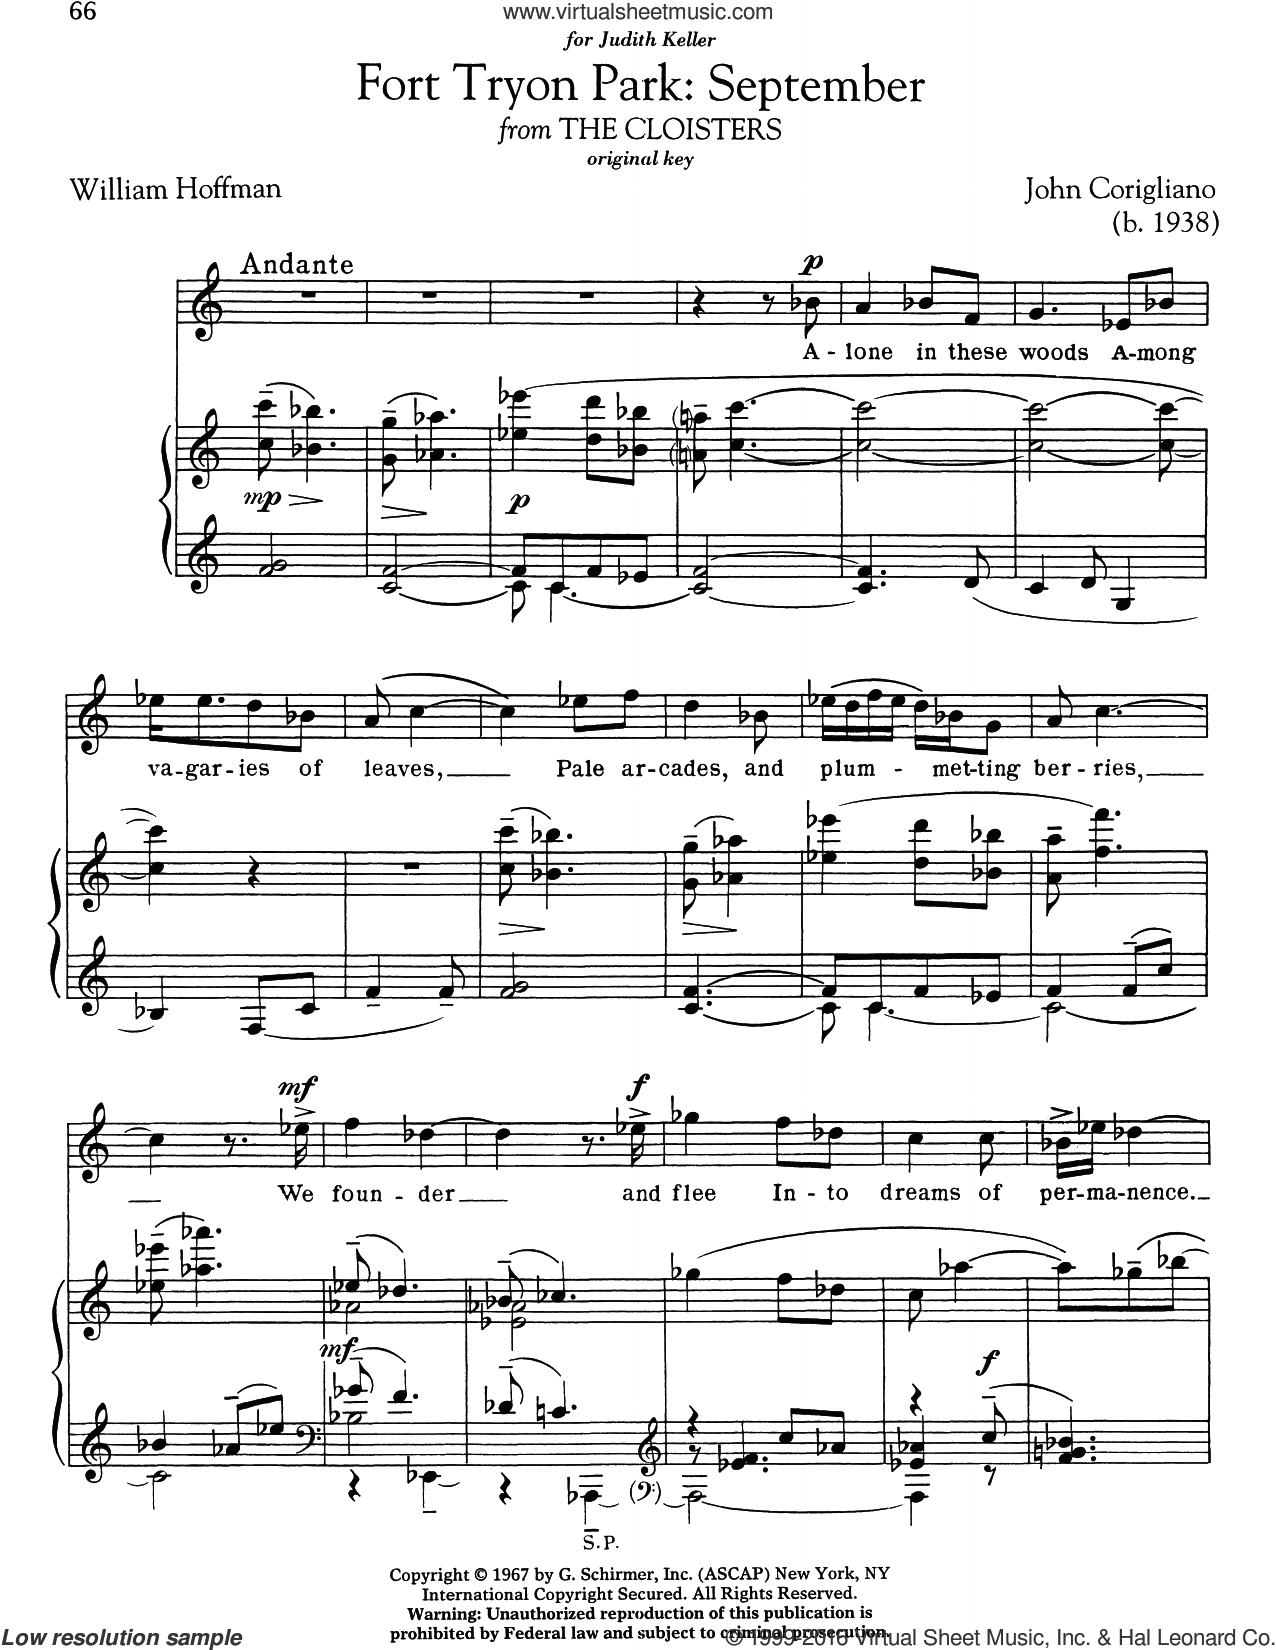 Fort Tryon Park: September sheet music for voice and piano (High ) by John Corigliano and William Hoffman. Score Image Preview.